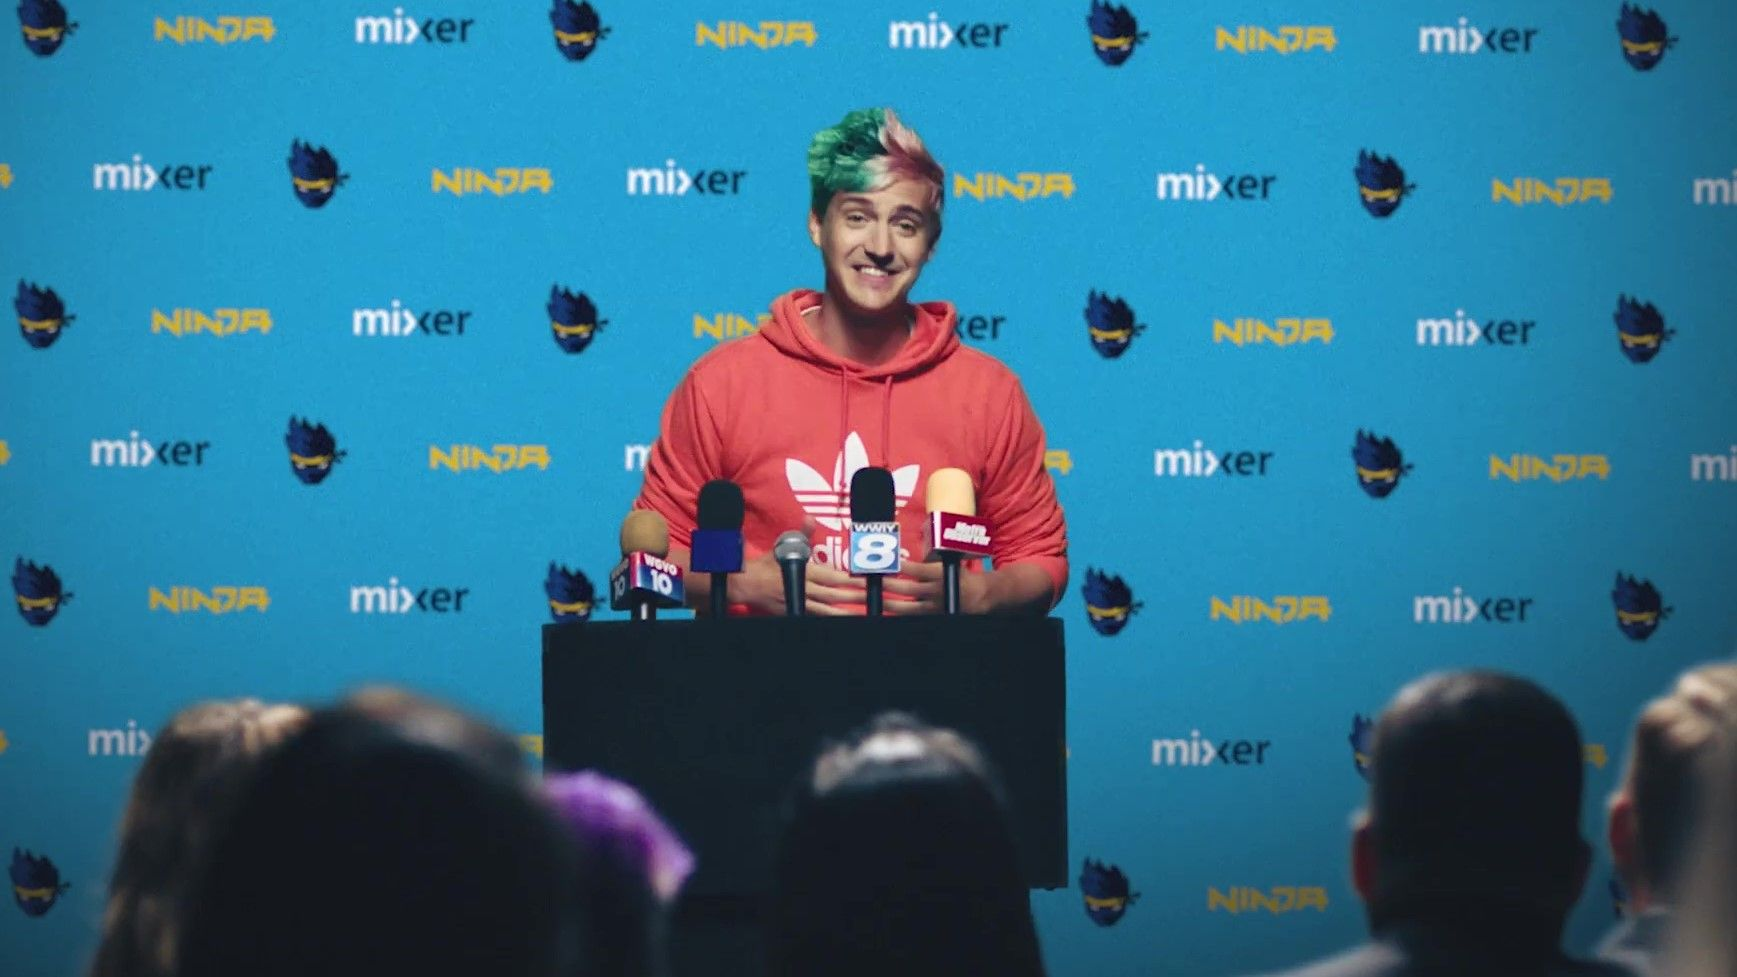 Ninja's Big Move: What Does it Mean?